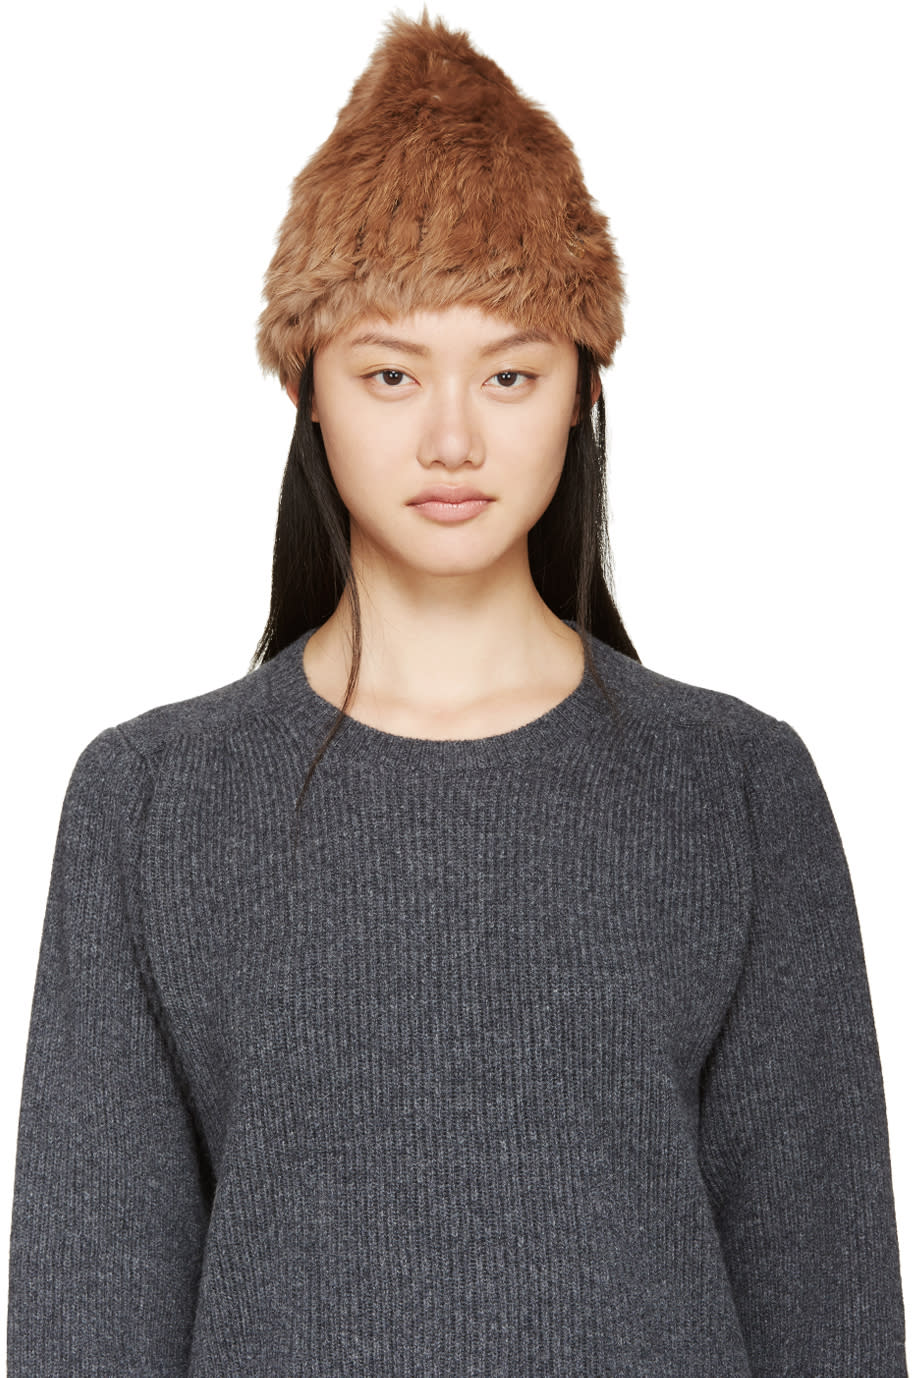 Meteo By Yves Salomon Brown Knit Rabbit Fur Toque